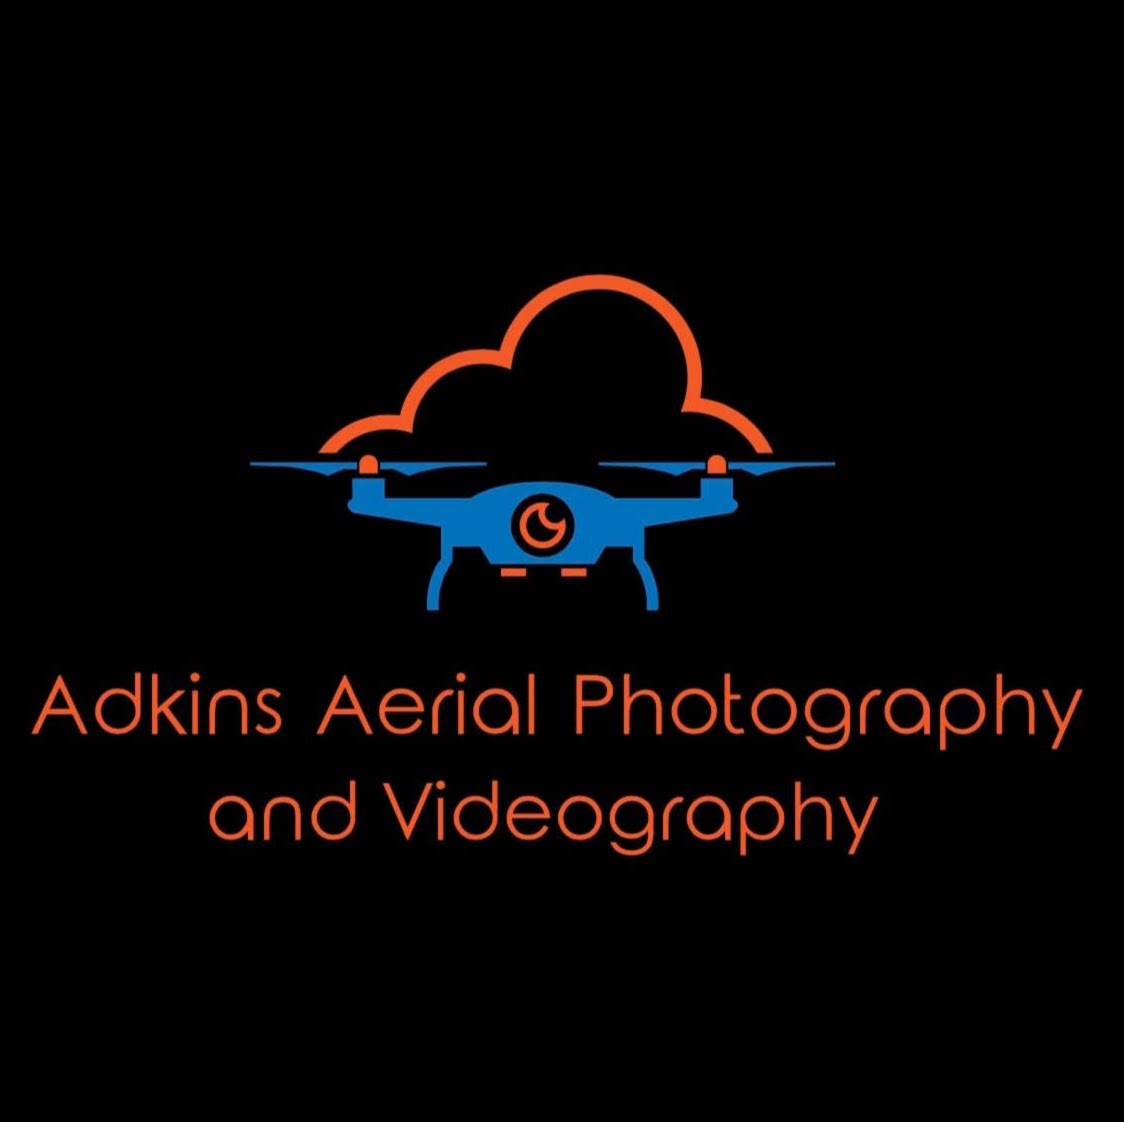 Adkins Aerial Photography & Videography